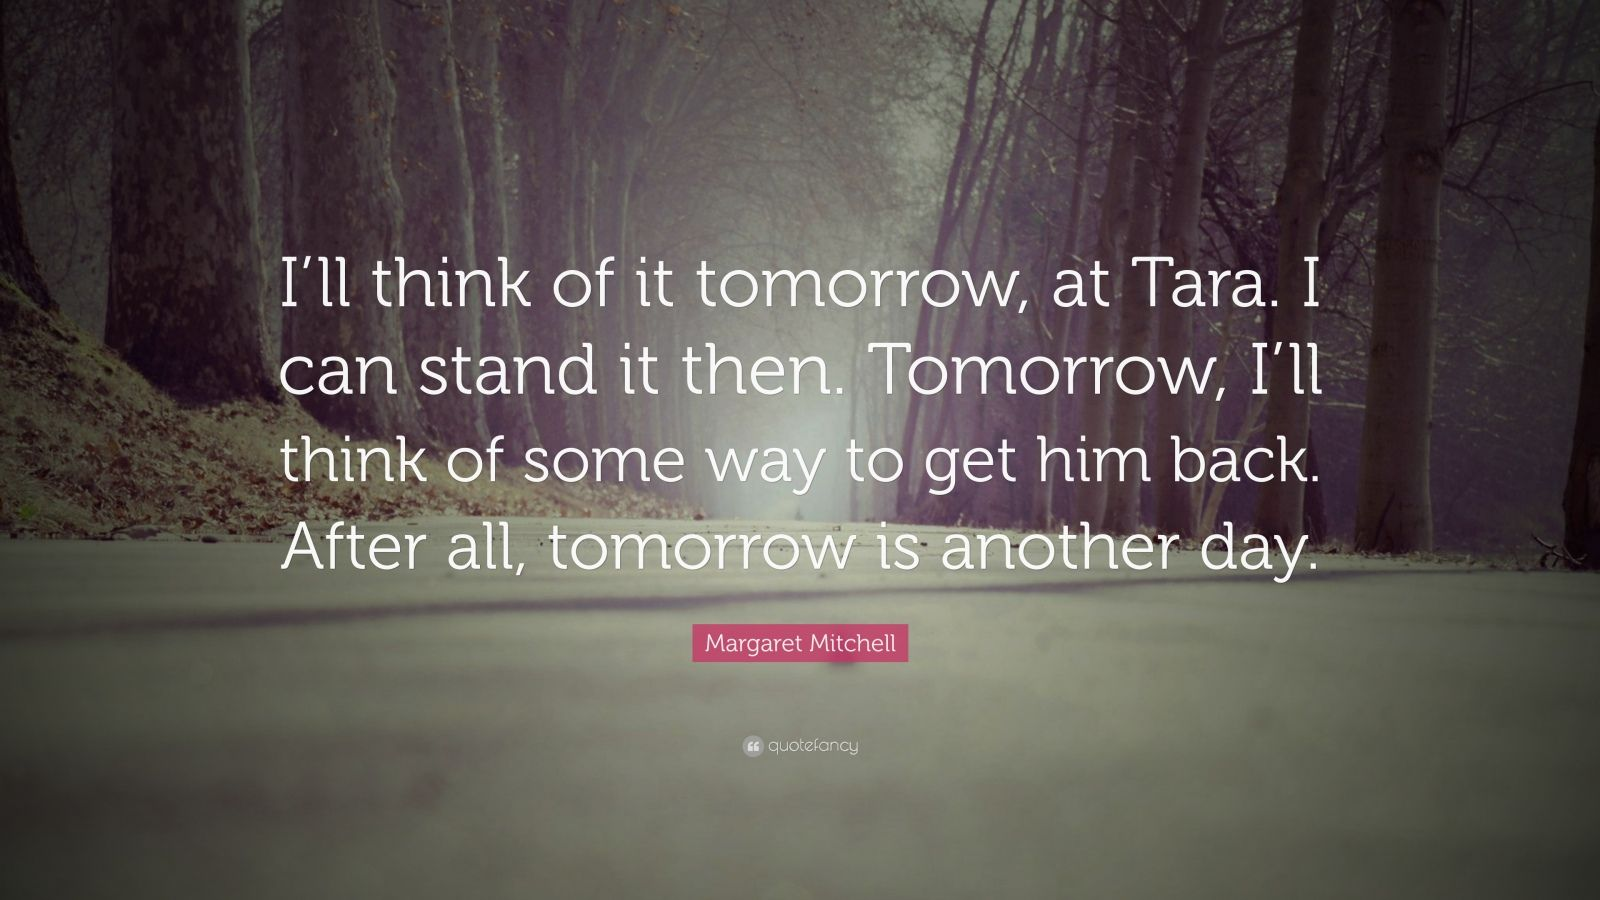 "Margaret Mitchell Quote: ""I'll think of it tomorrow, at Tara. I can stand it then. Tomorrow, I'll think of some way to get him back. After all, tomorrow is another day."""